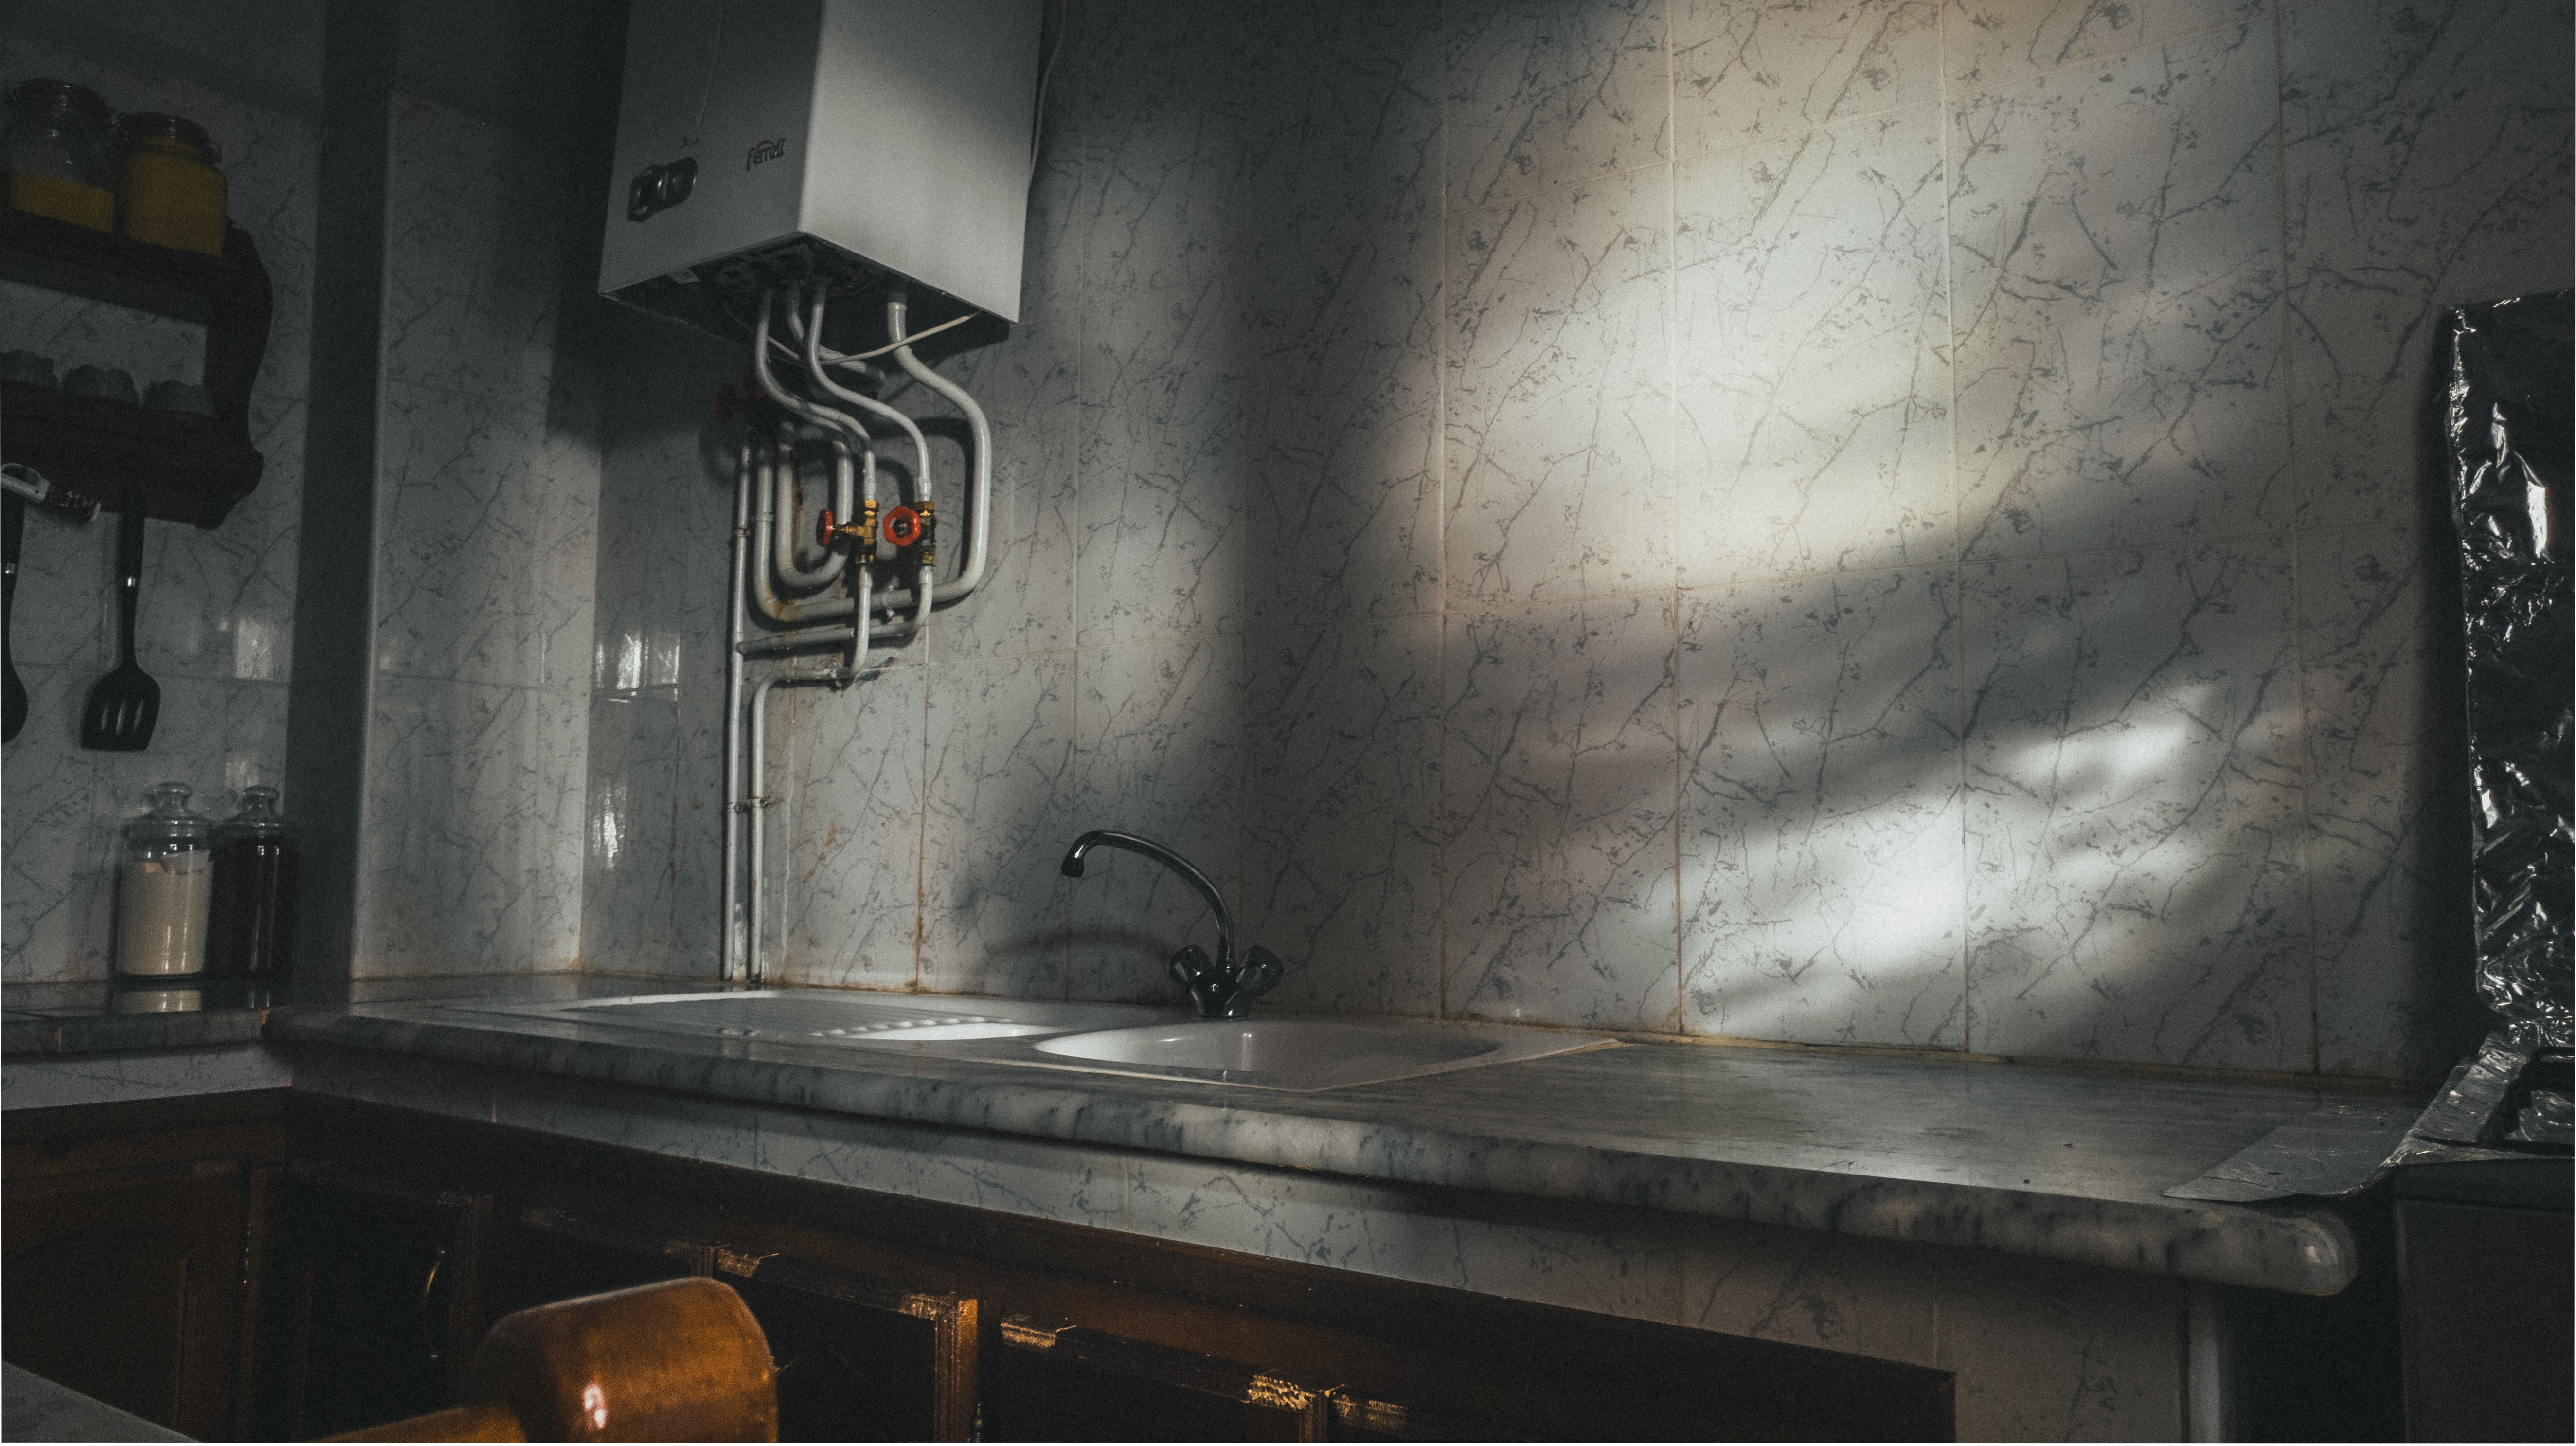 gray stainless steel sink with faucet